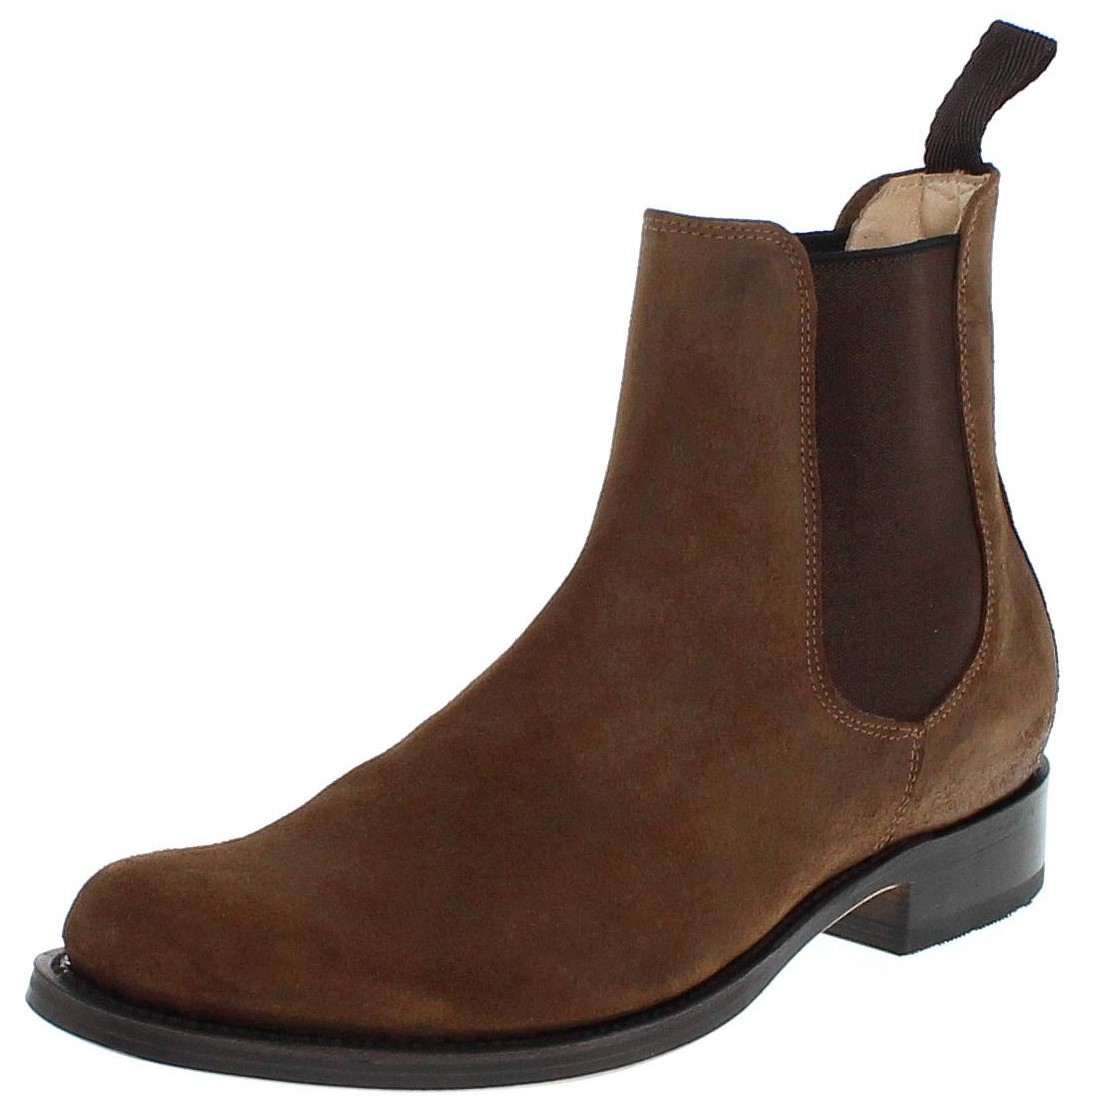 Sendra Boots 14015 Rovere Chelsea Boot - brown